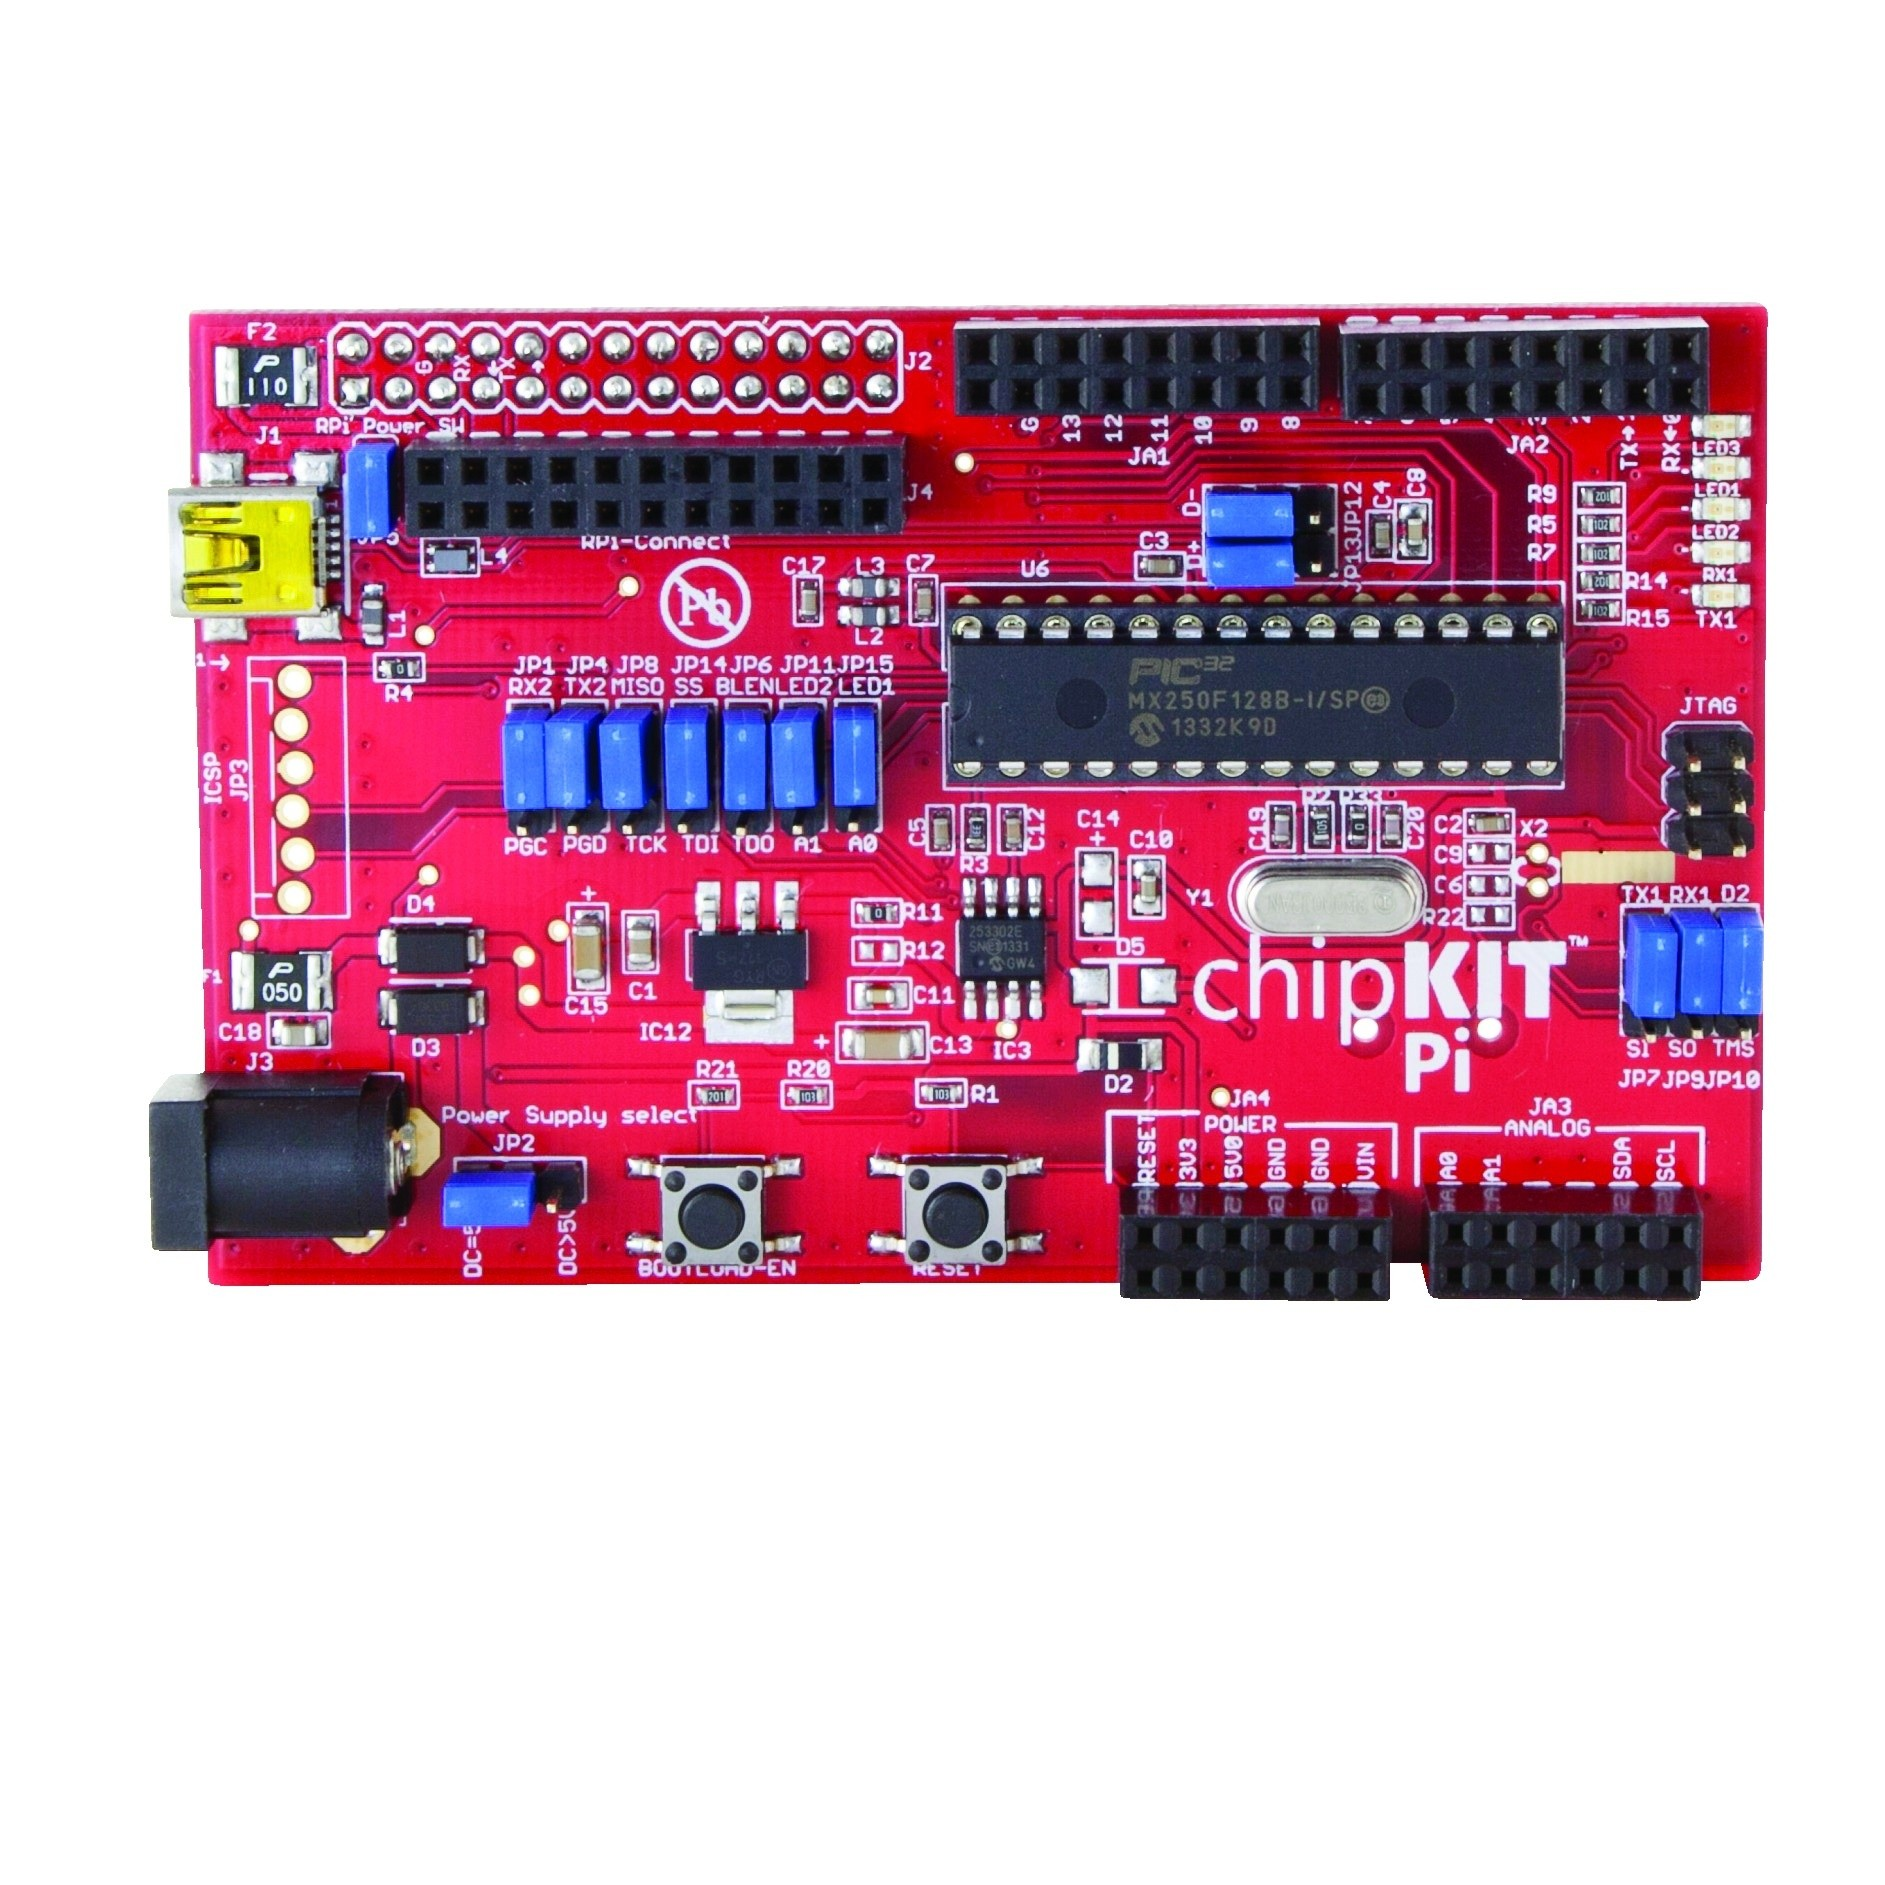 Arduino compatible chipkit platform designed for raspberry